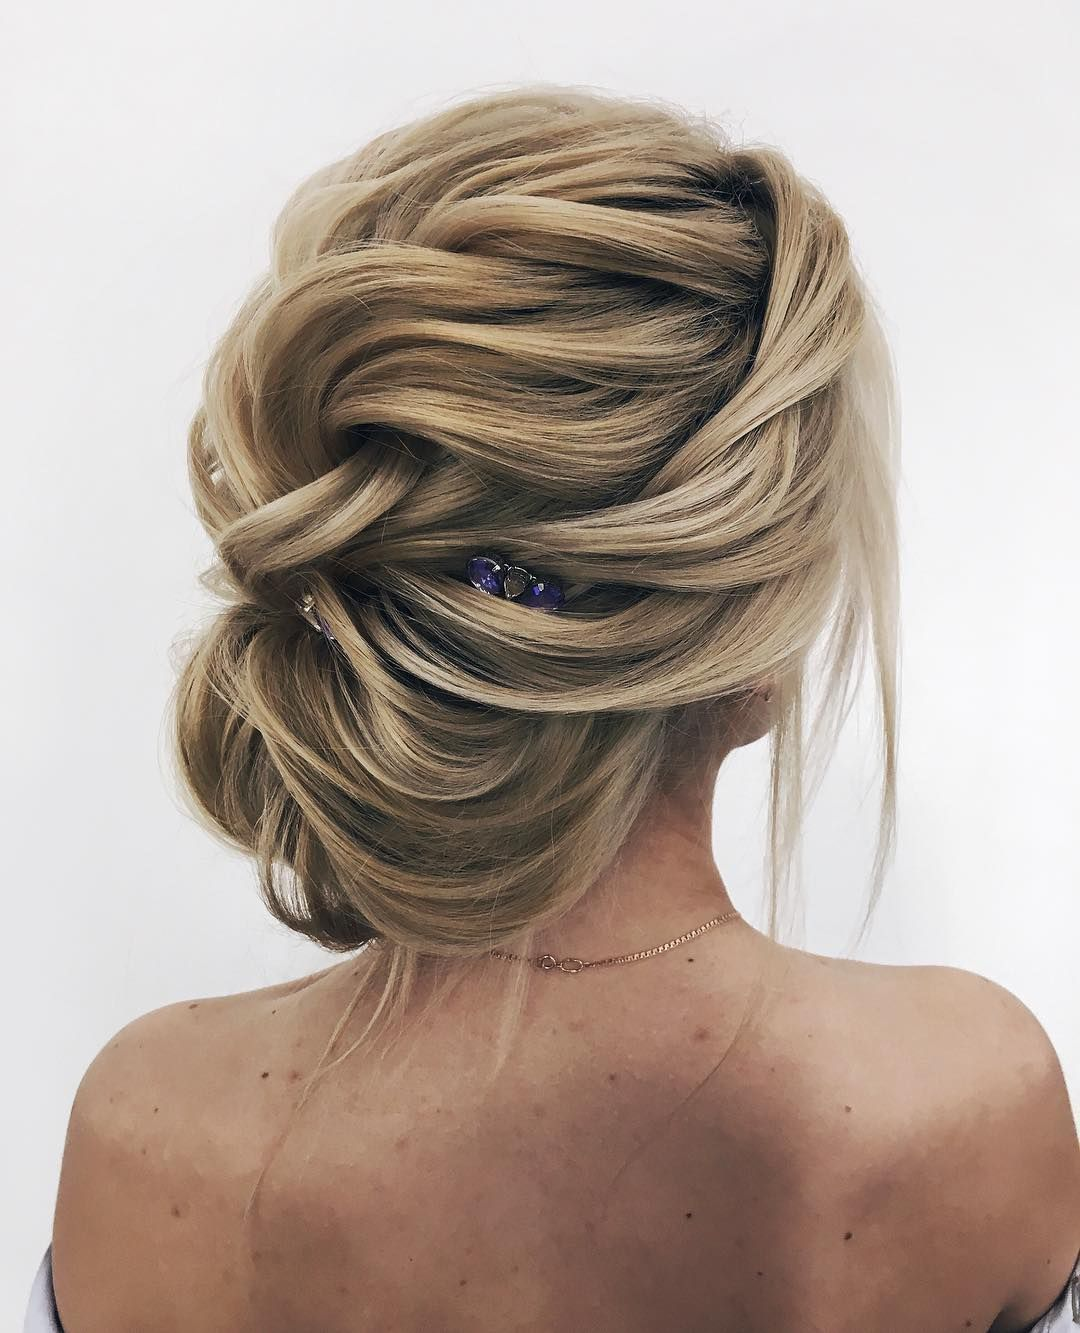 Best Prom Hairstyles For Strapless Dresses Simple Prom Hair Hair Styles Wedding Hair And Makeup